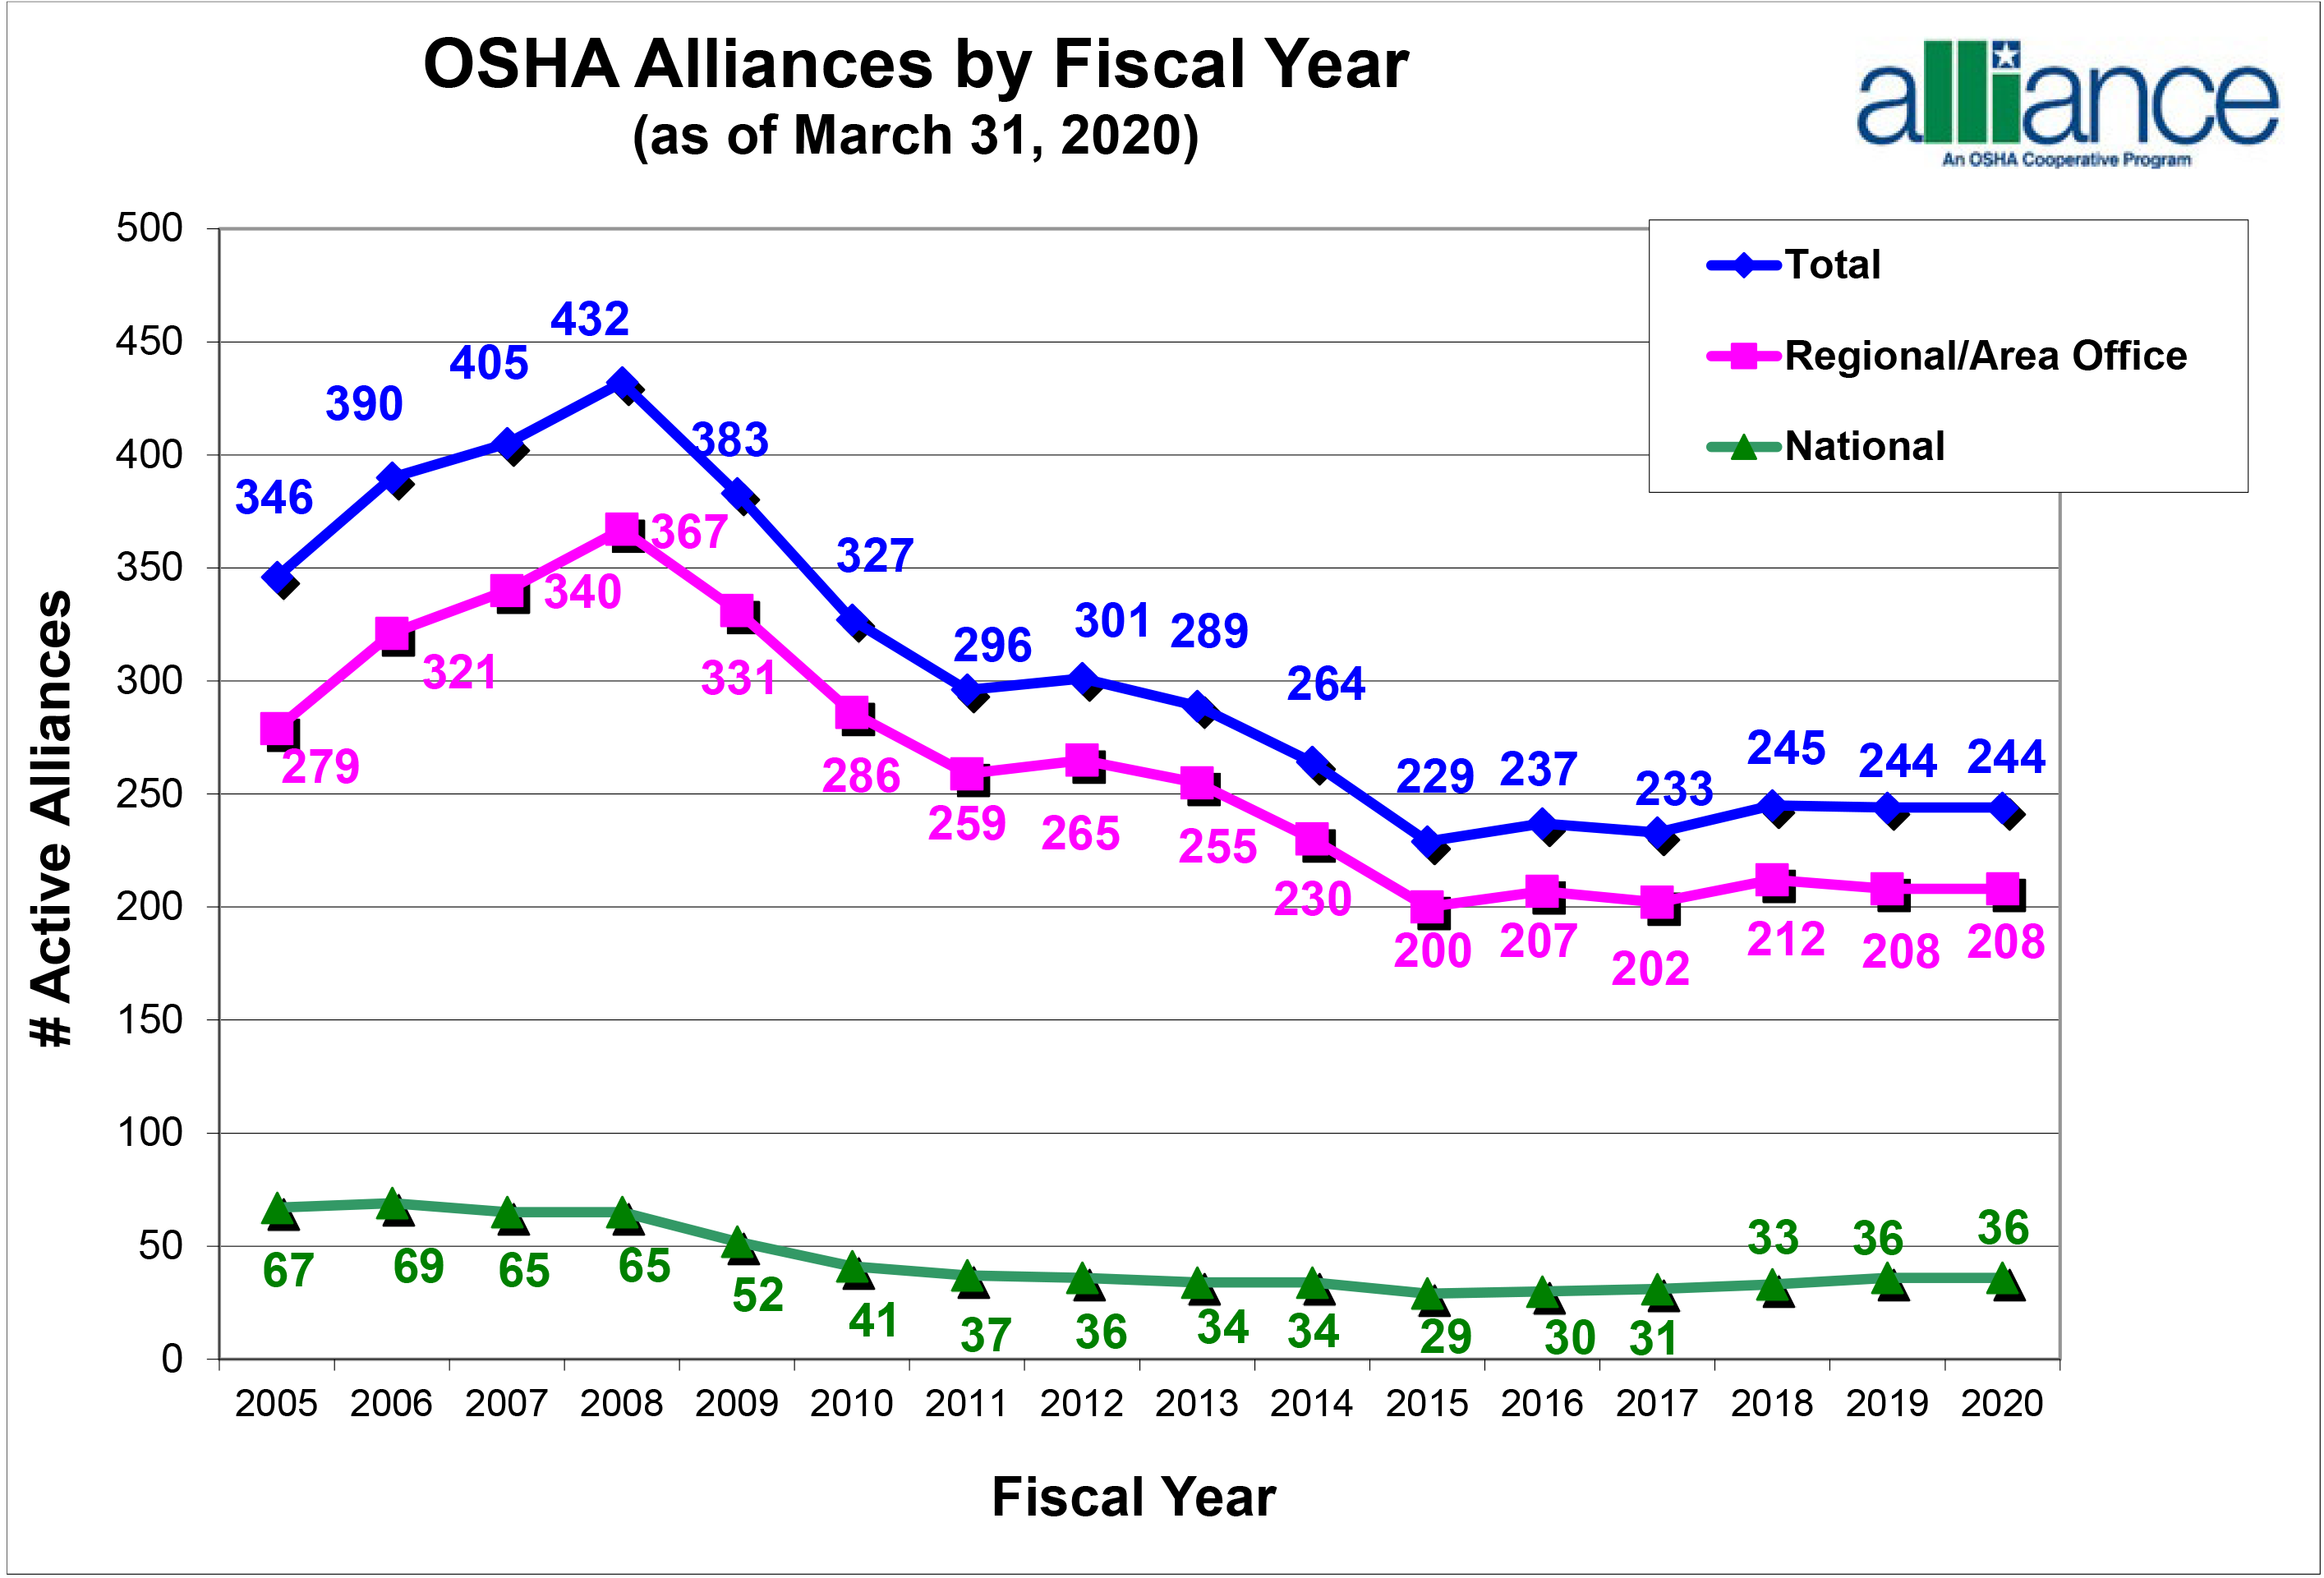 OSHA Alliances by Fiscal Year